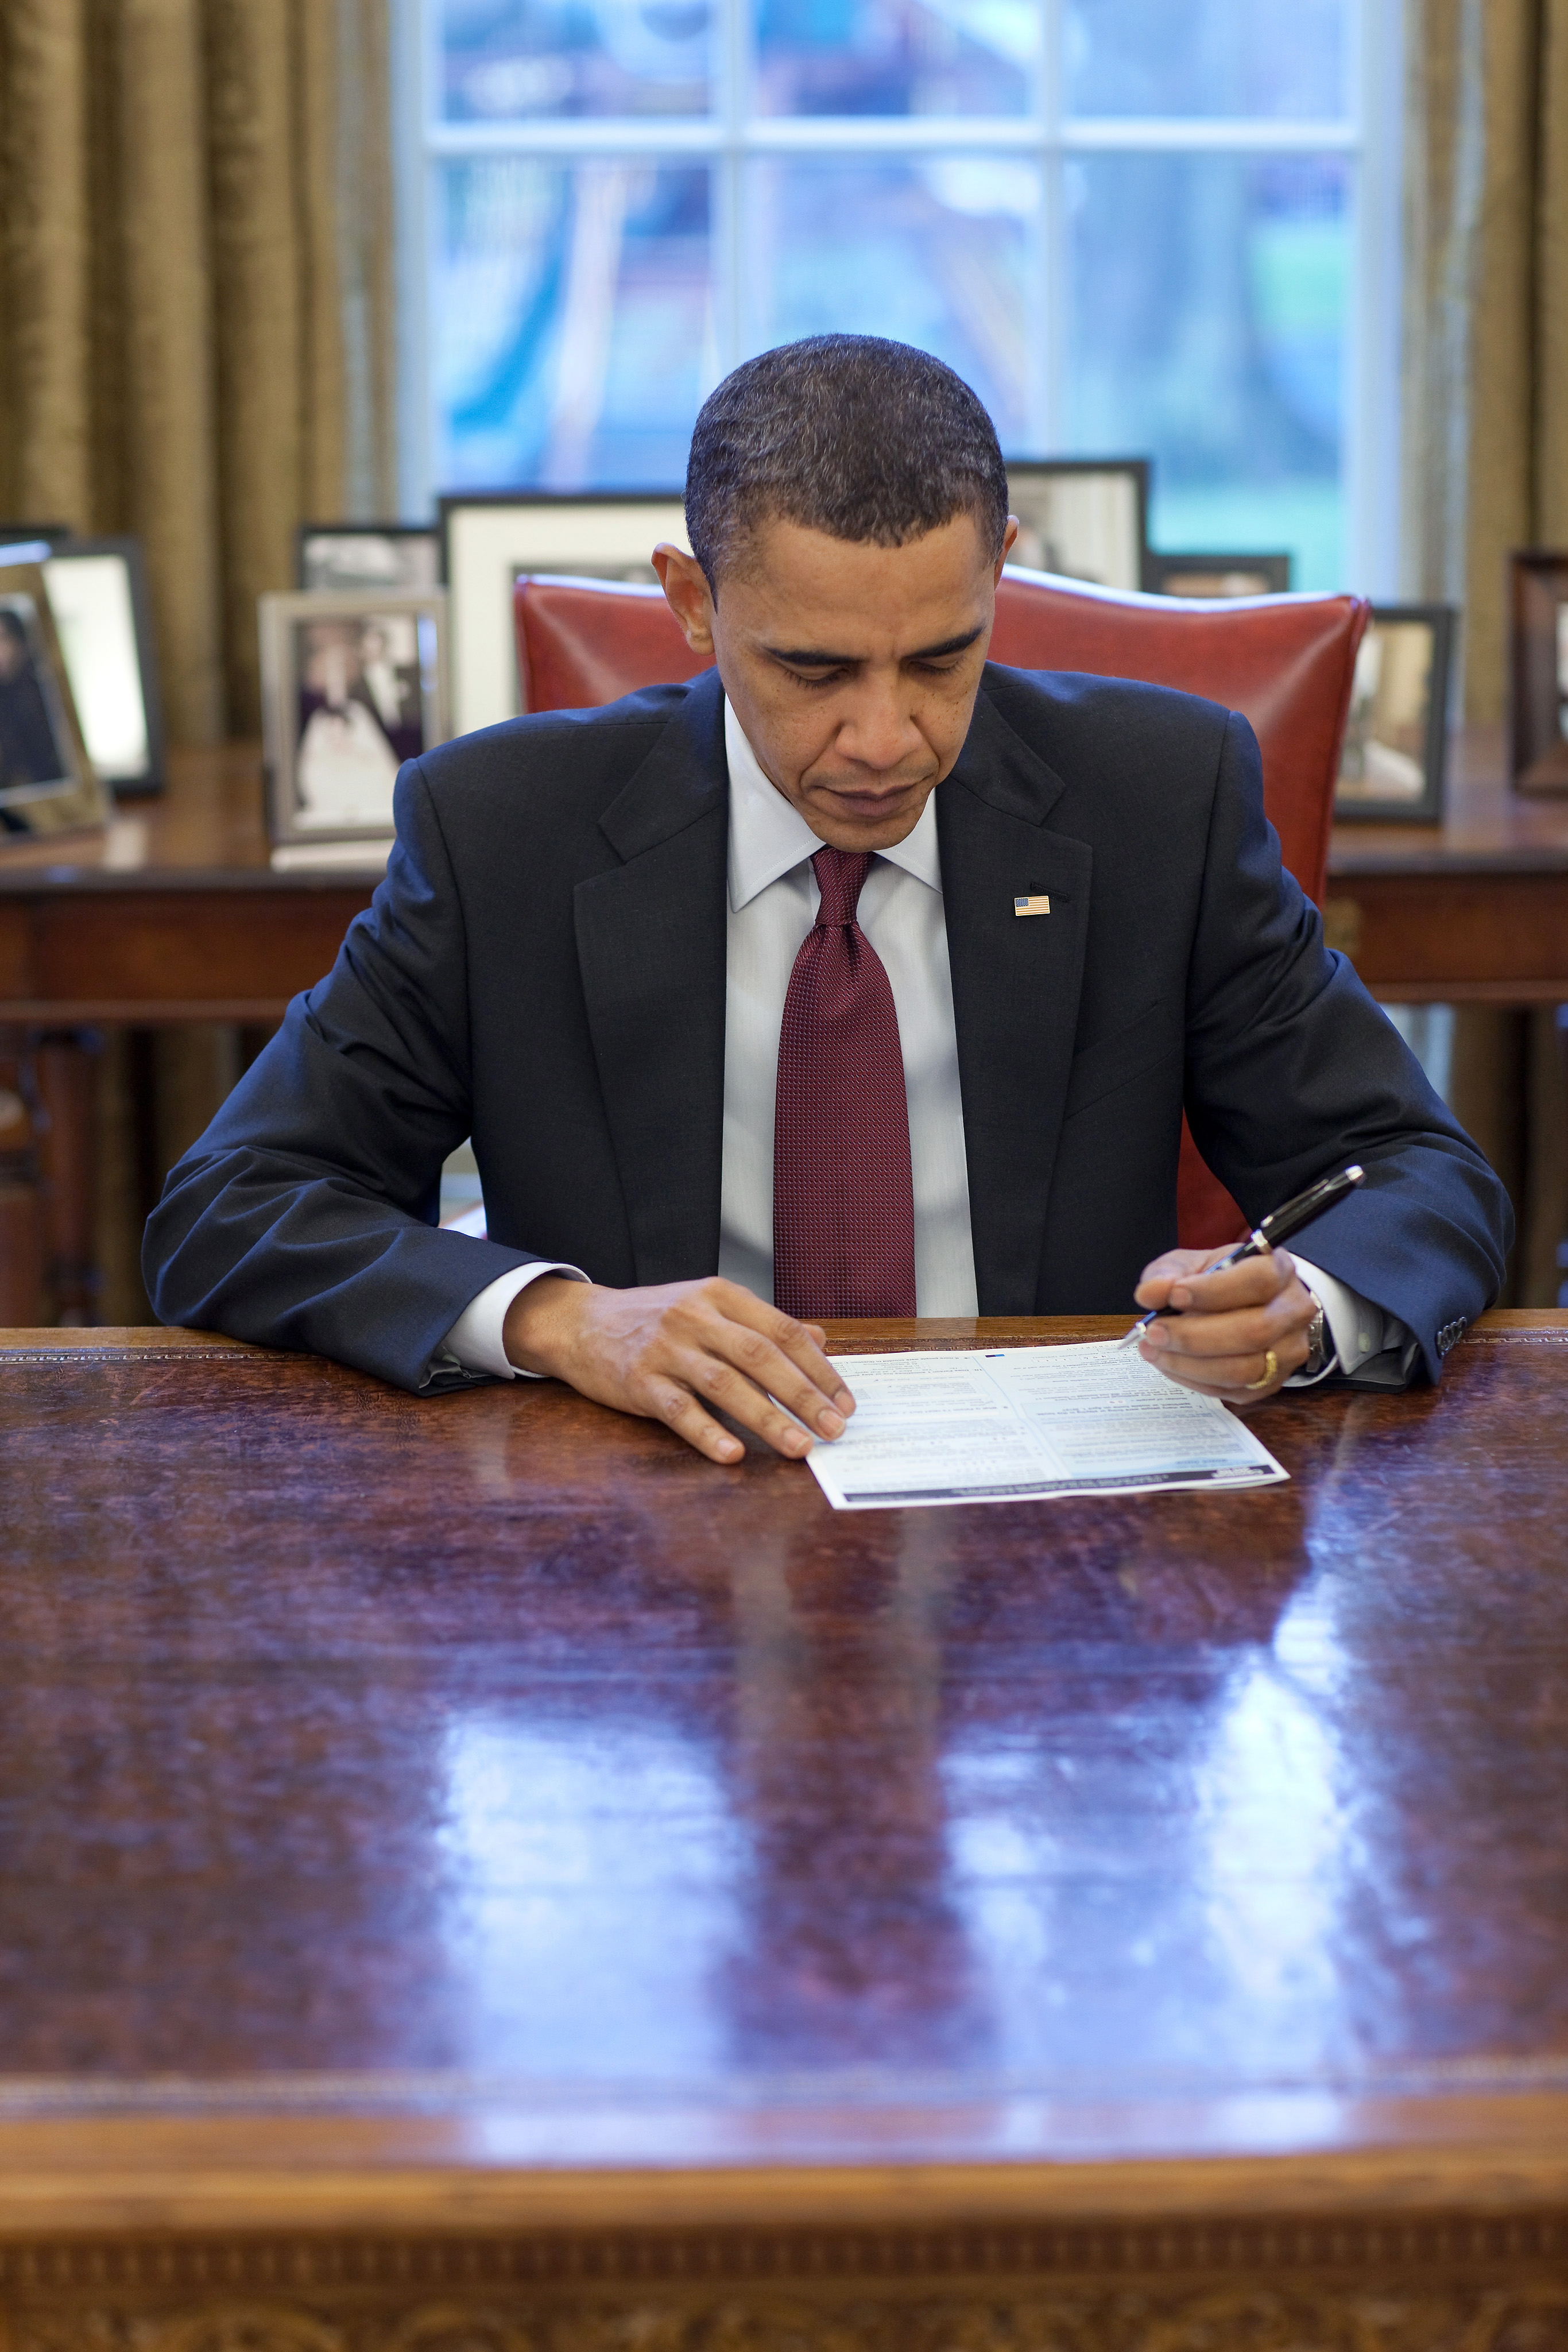 President Obama Fills Out Census Form